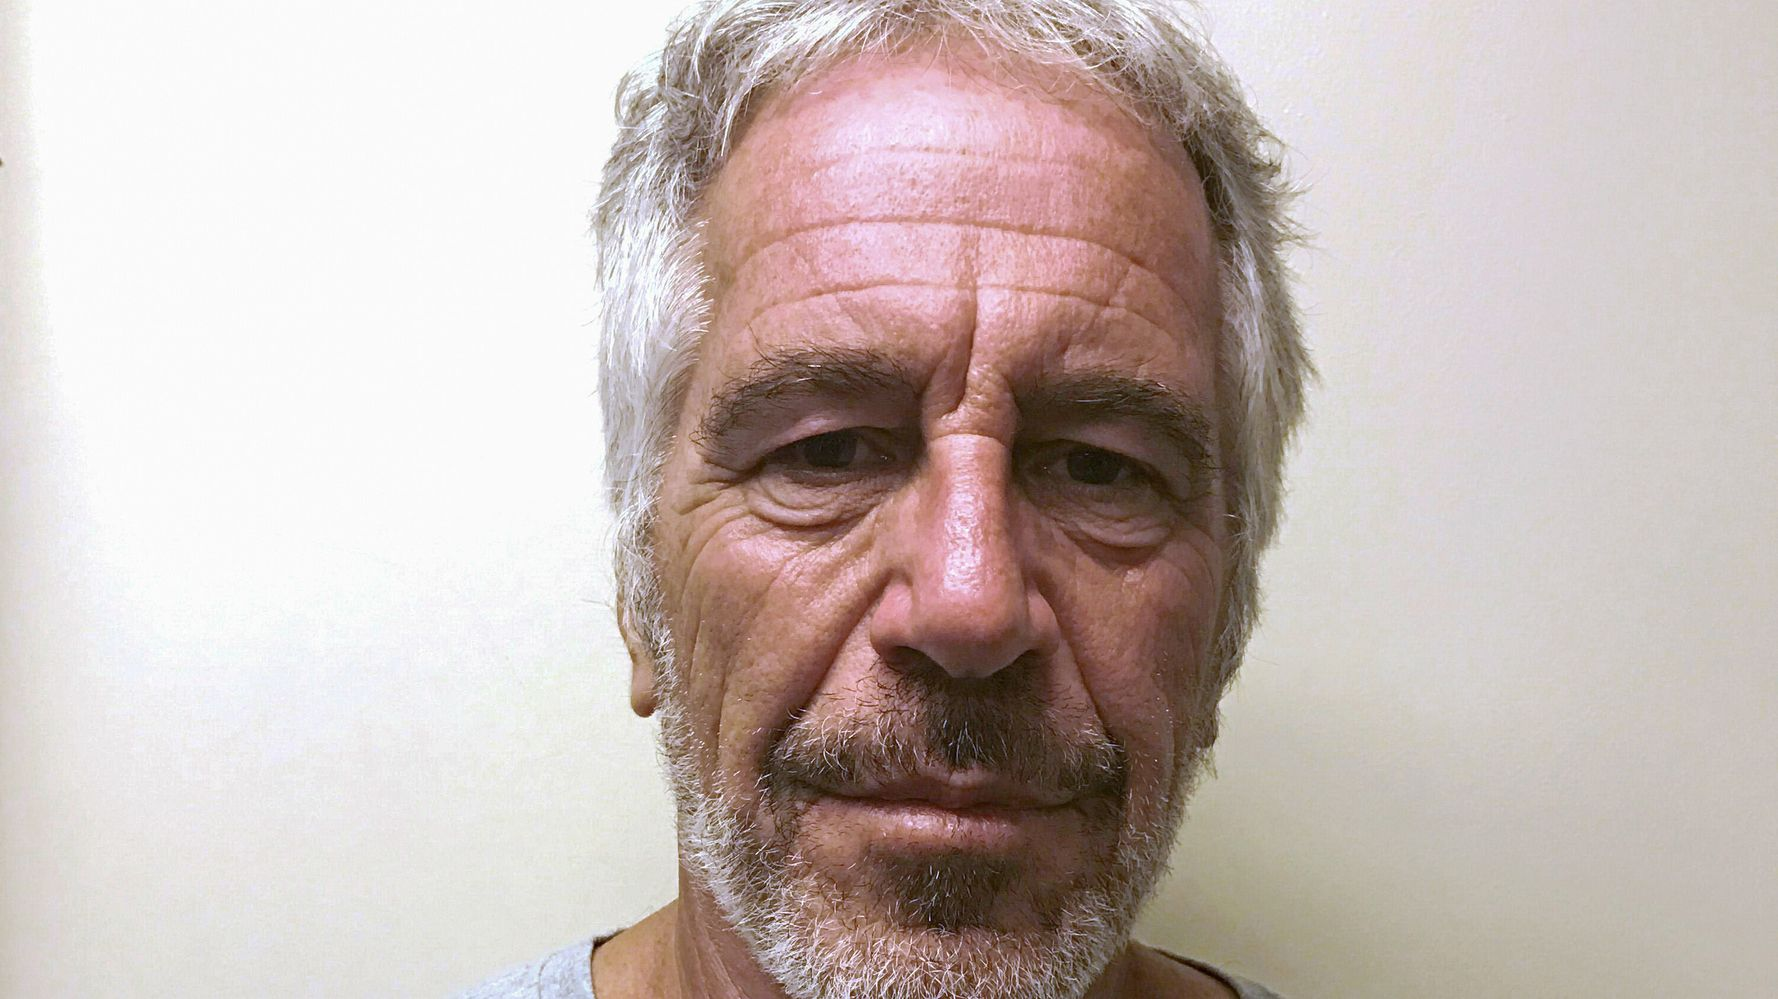 Westlake Legal Group 5d570c632200002f00f6a359 Jeffrey Epstein Died By Suicide, Medical Examiner Says